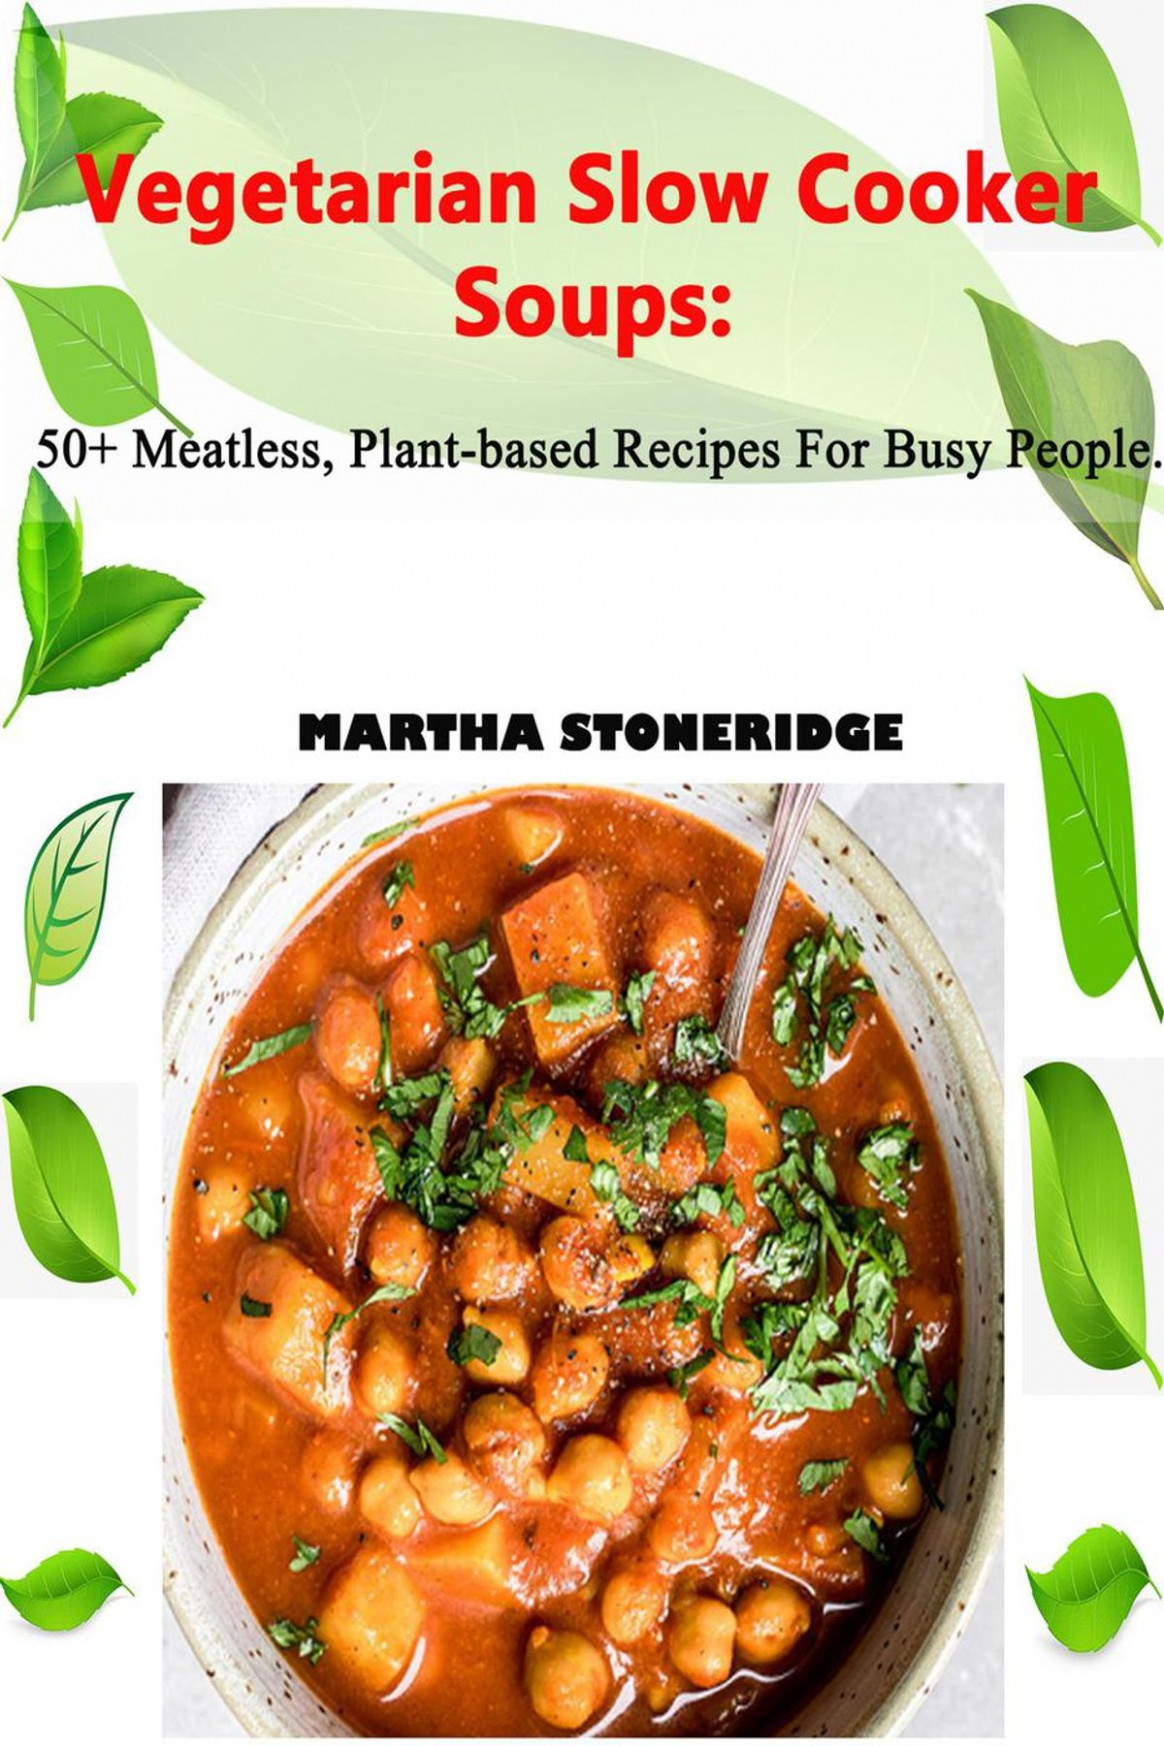 Vegetarian Slow Cooker Soups: 11+ Meatless, Plant-based Recipes For Busy  People ebook by MARTHA STONERIDGE - Rakuten Kobo - recipes vegetarian slow cooker